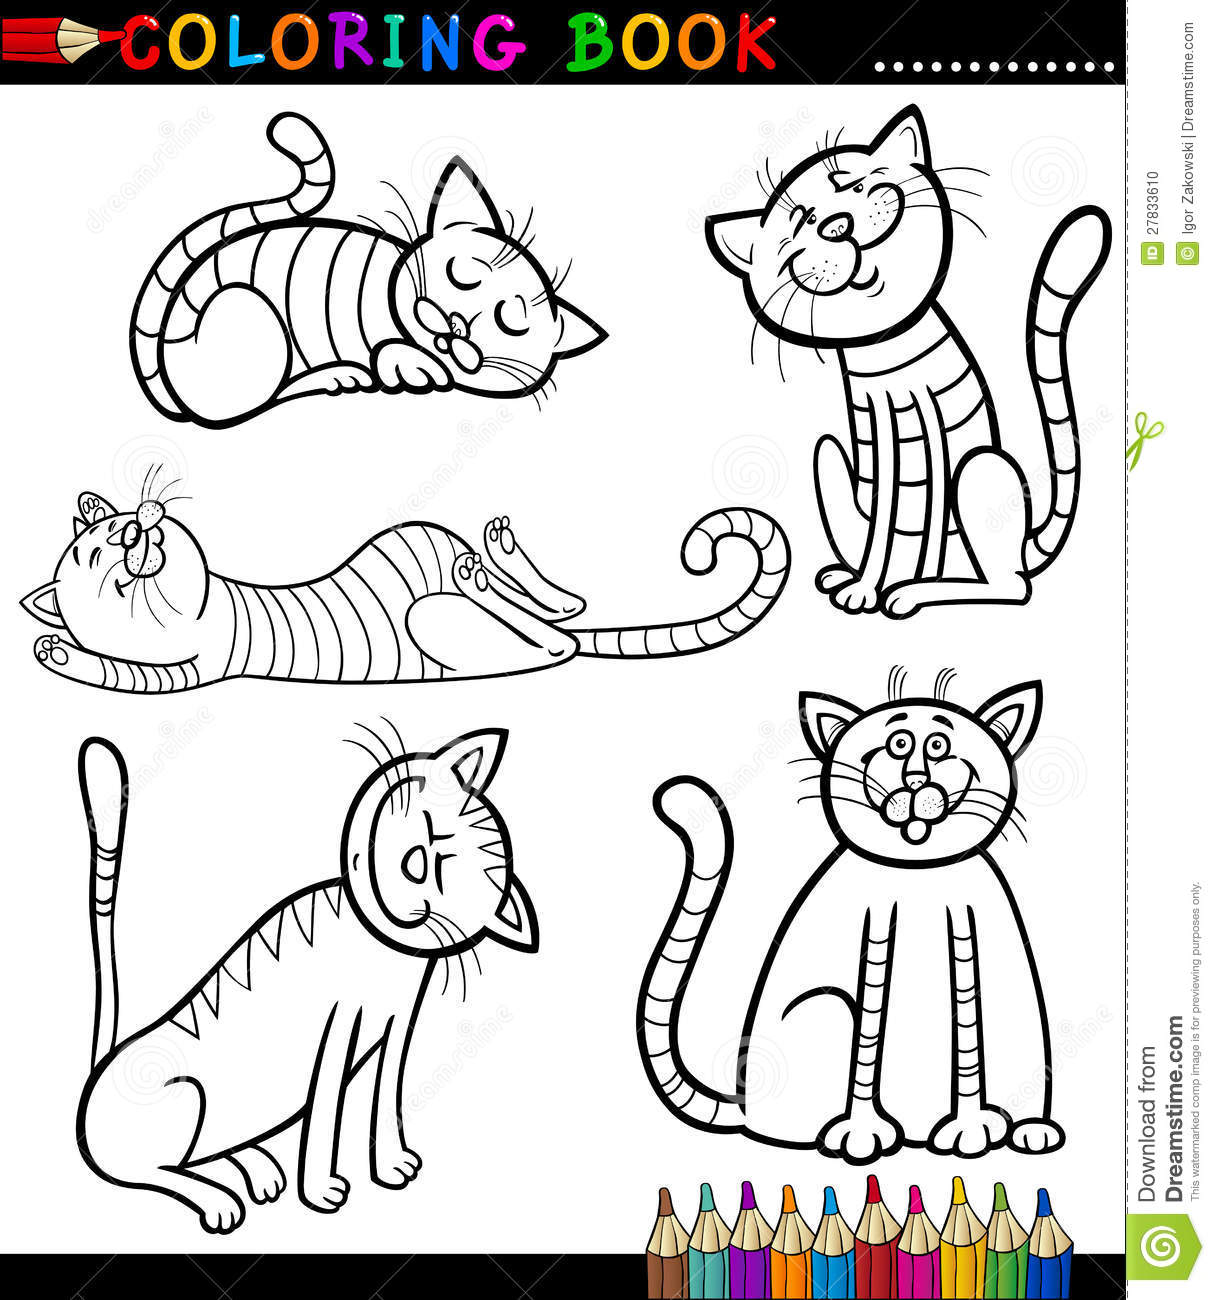 Coloring book kittens - Cartoon Cats Or Kittens For Coloring Book